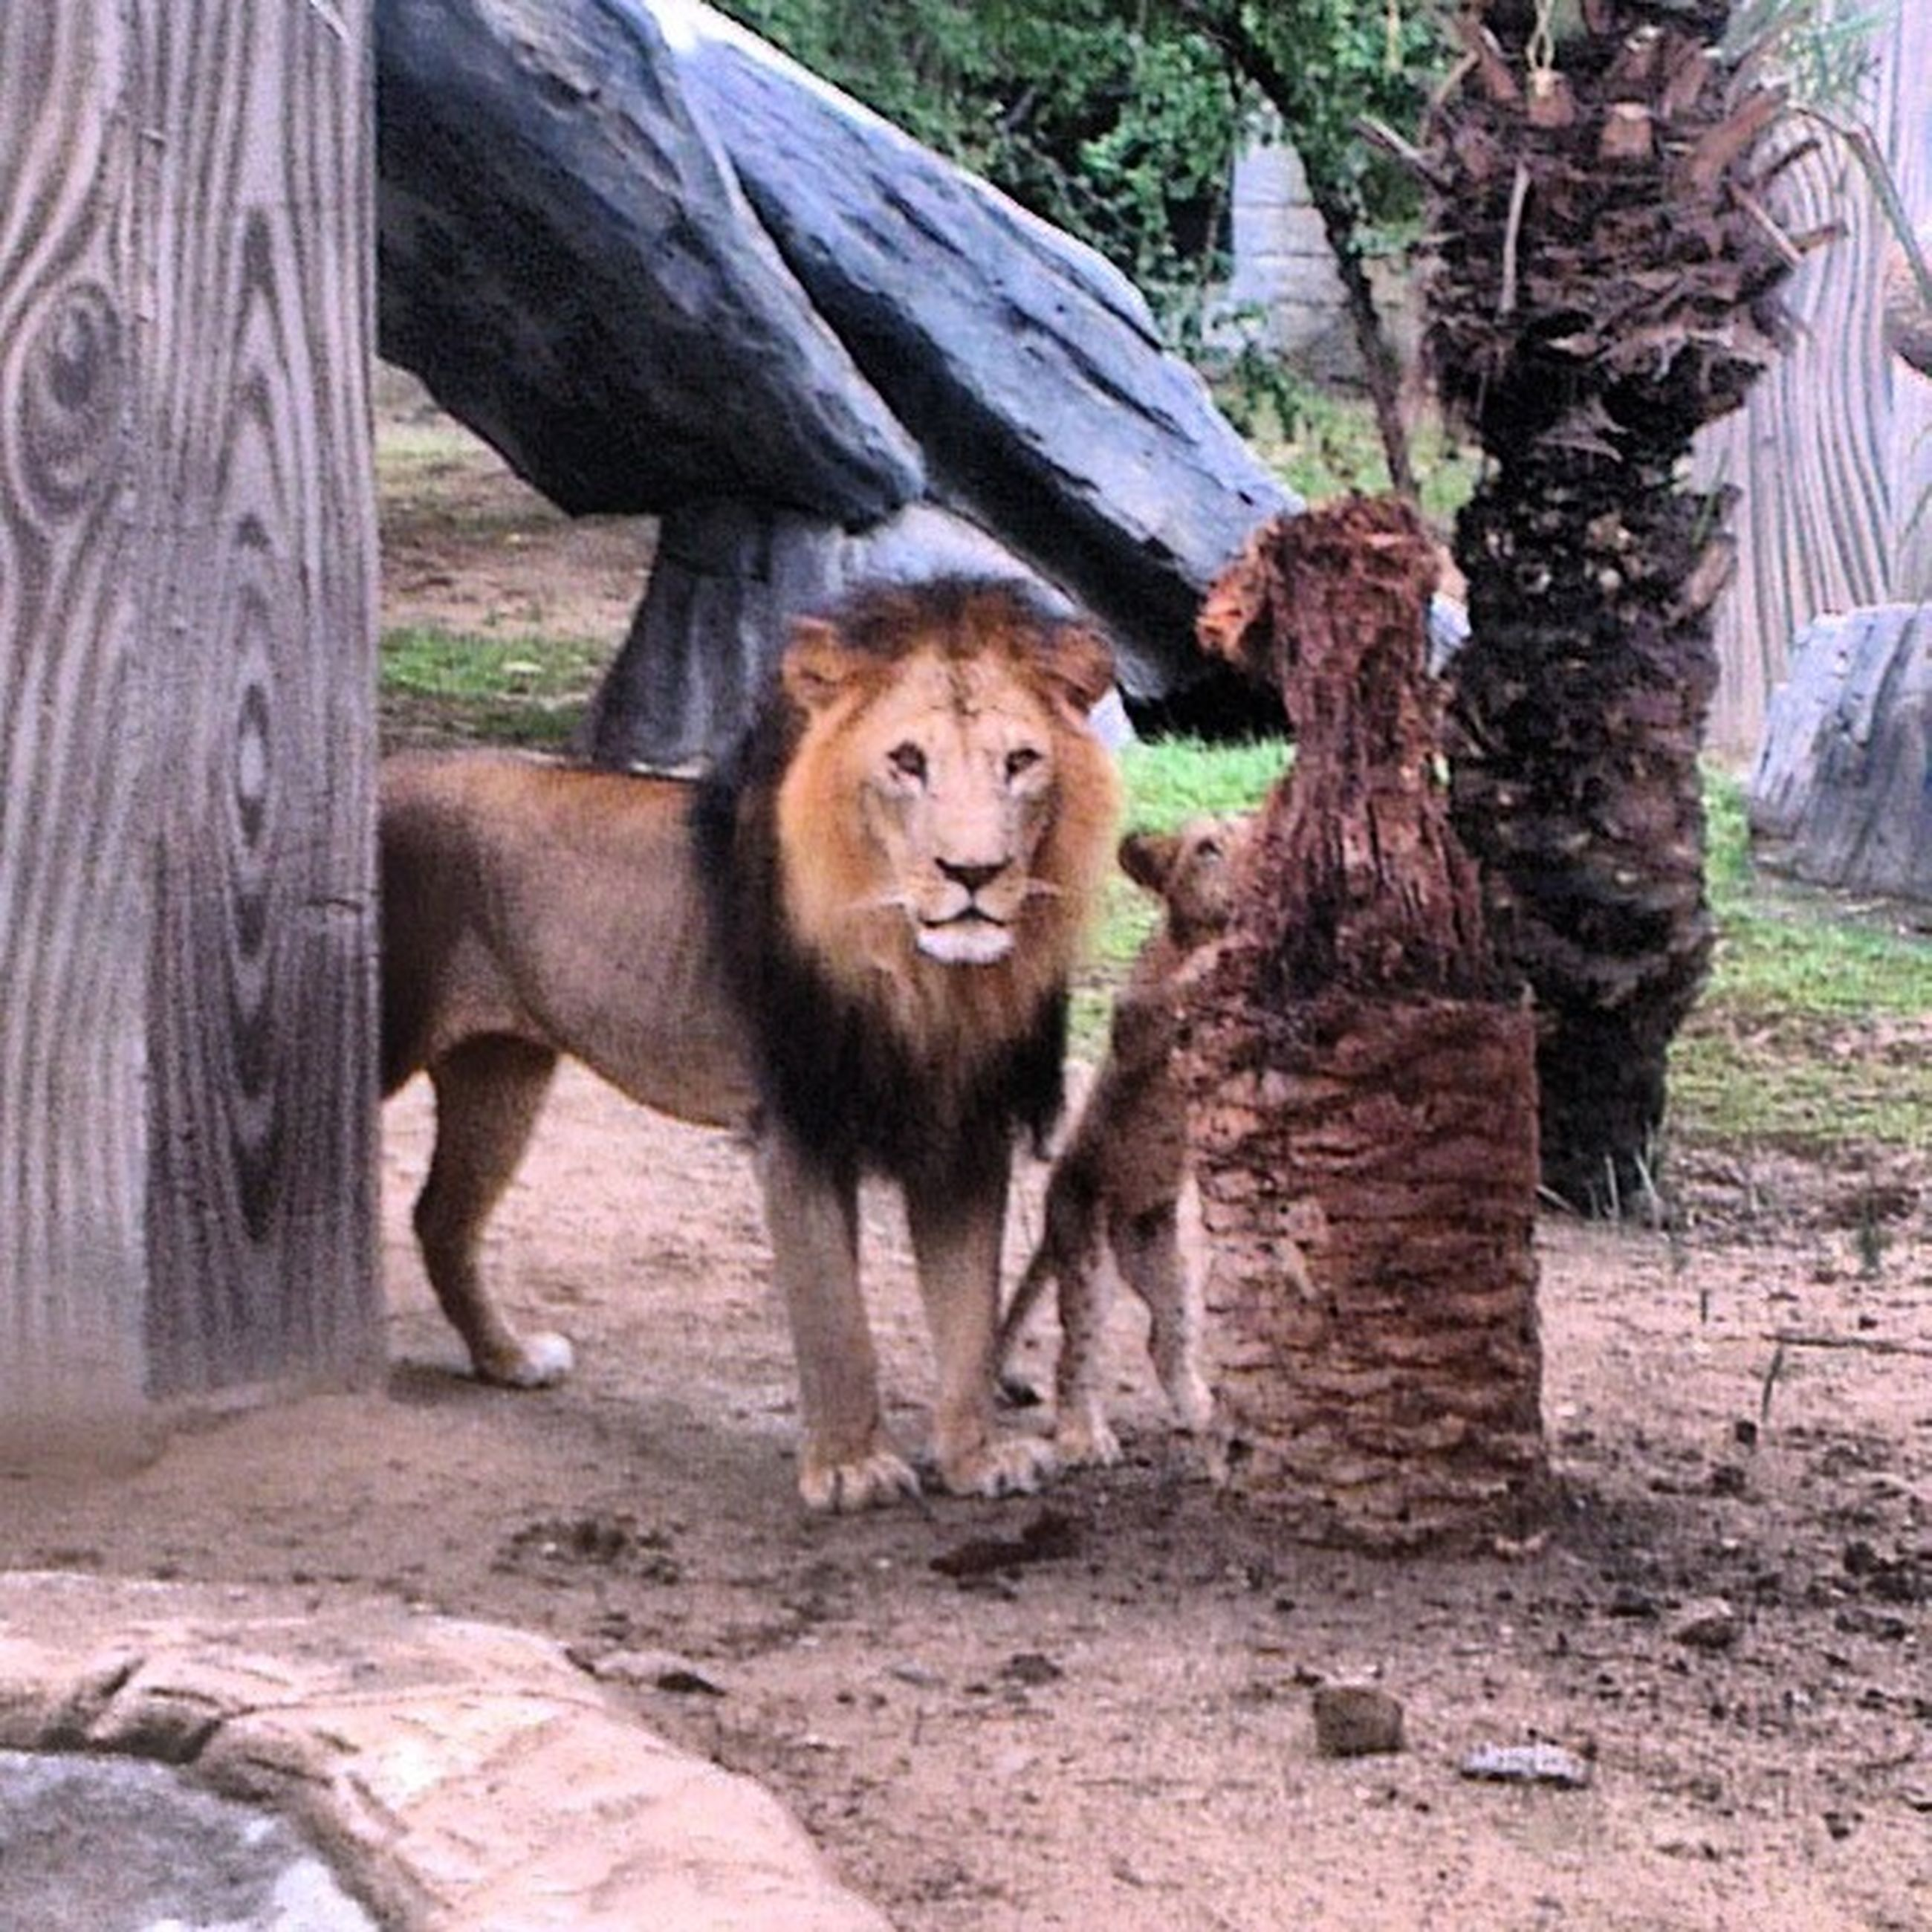 animal themes, mammal, one animal, animals in the wild, wildlife, tree, zoo, portrait, standing, domestic animals, looking at camera, animals in captivity, full length, day, two animals, outdoors, nature, sunlight, livestock, herbivorous